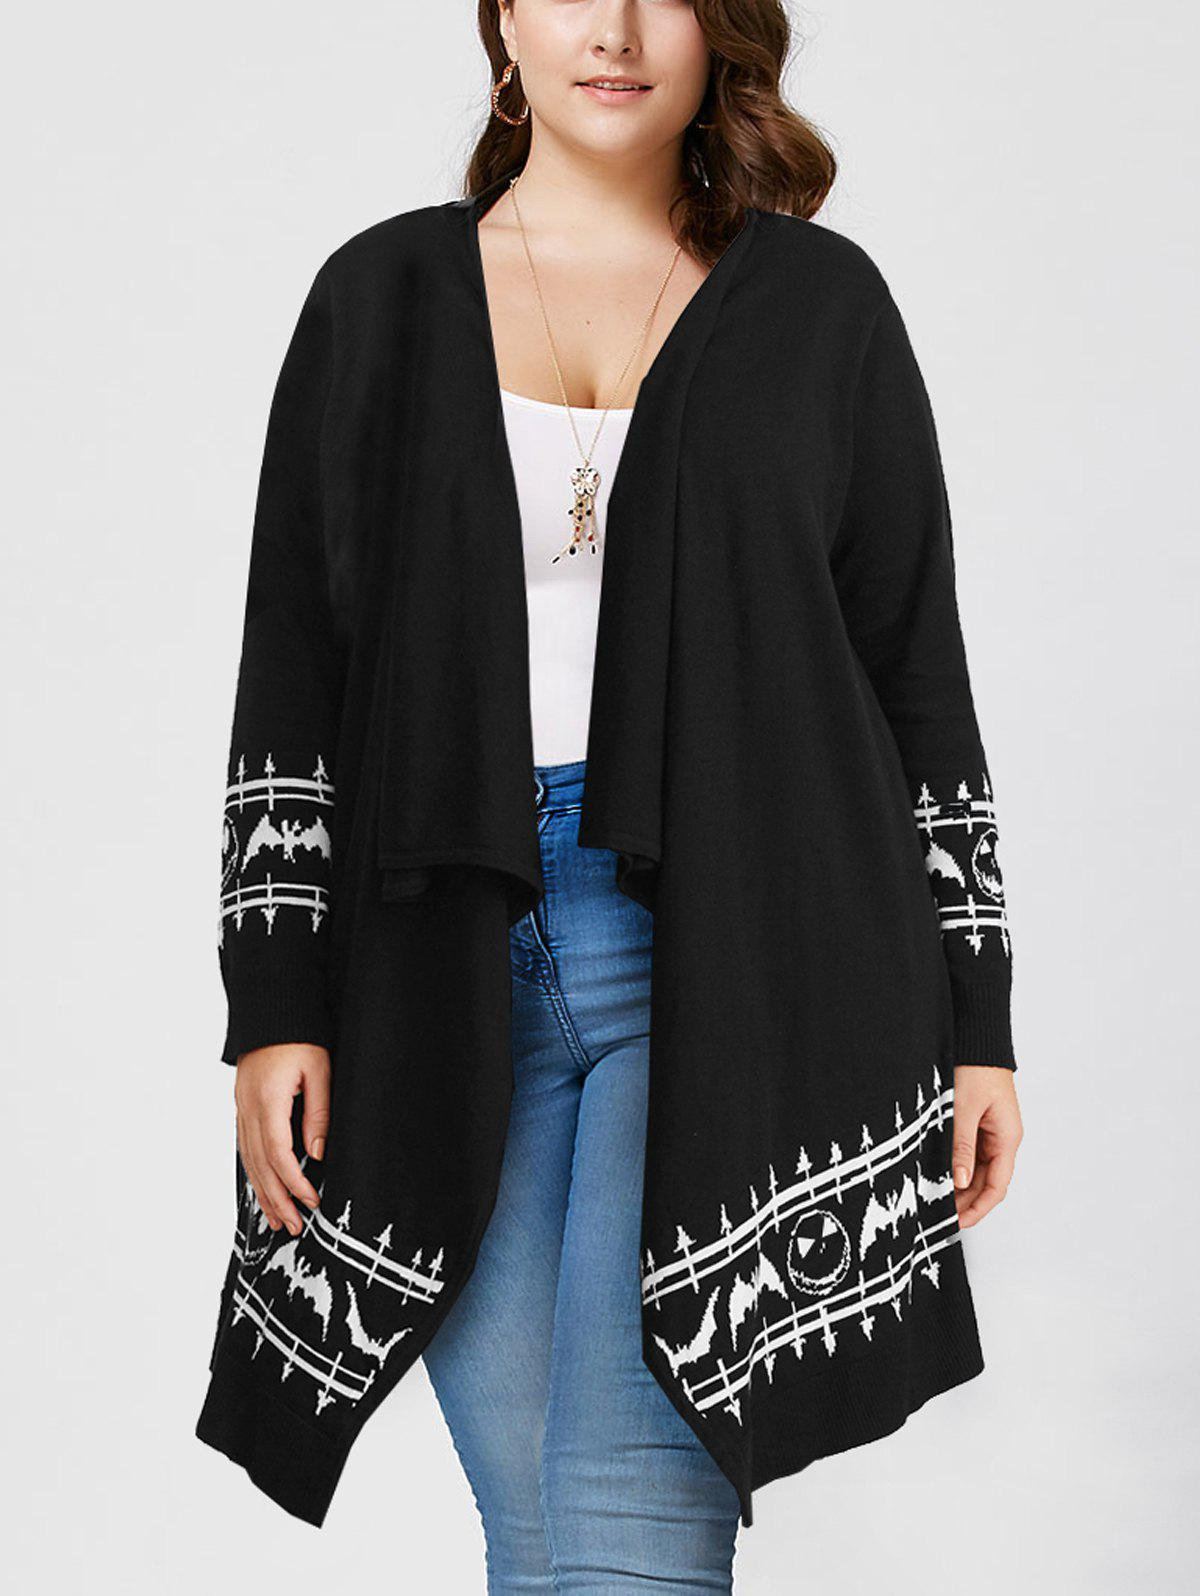 2018 Halloween Plus Size Graphic Long Sleeve Cardigan BLACK XL In ...